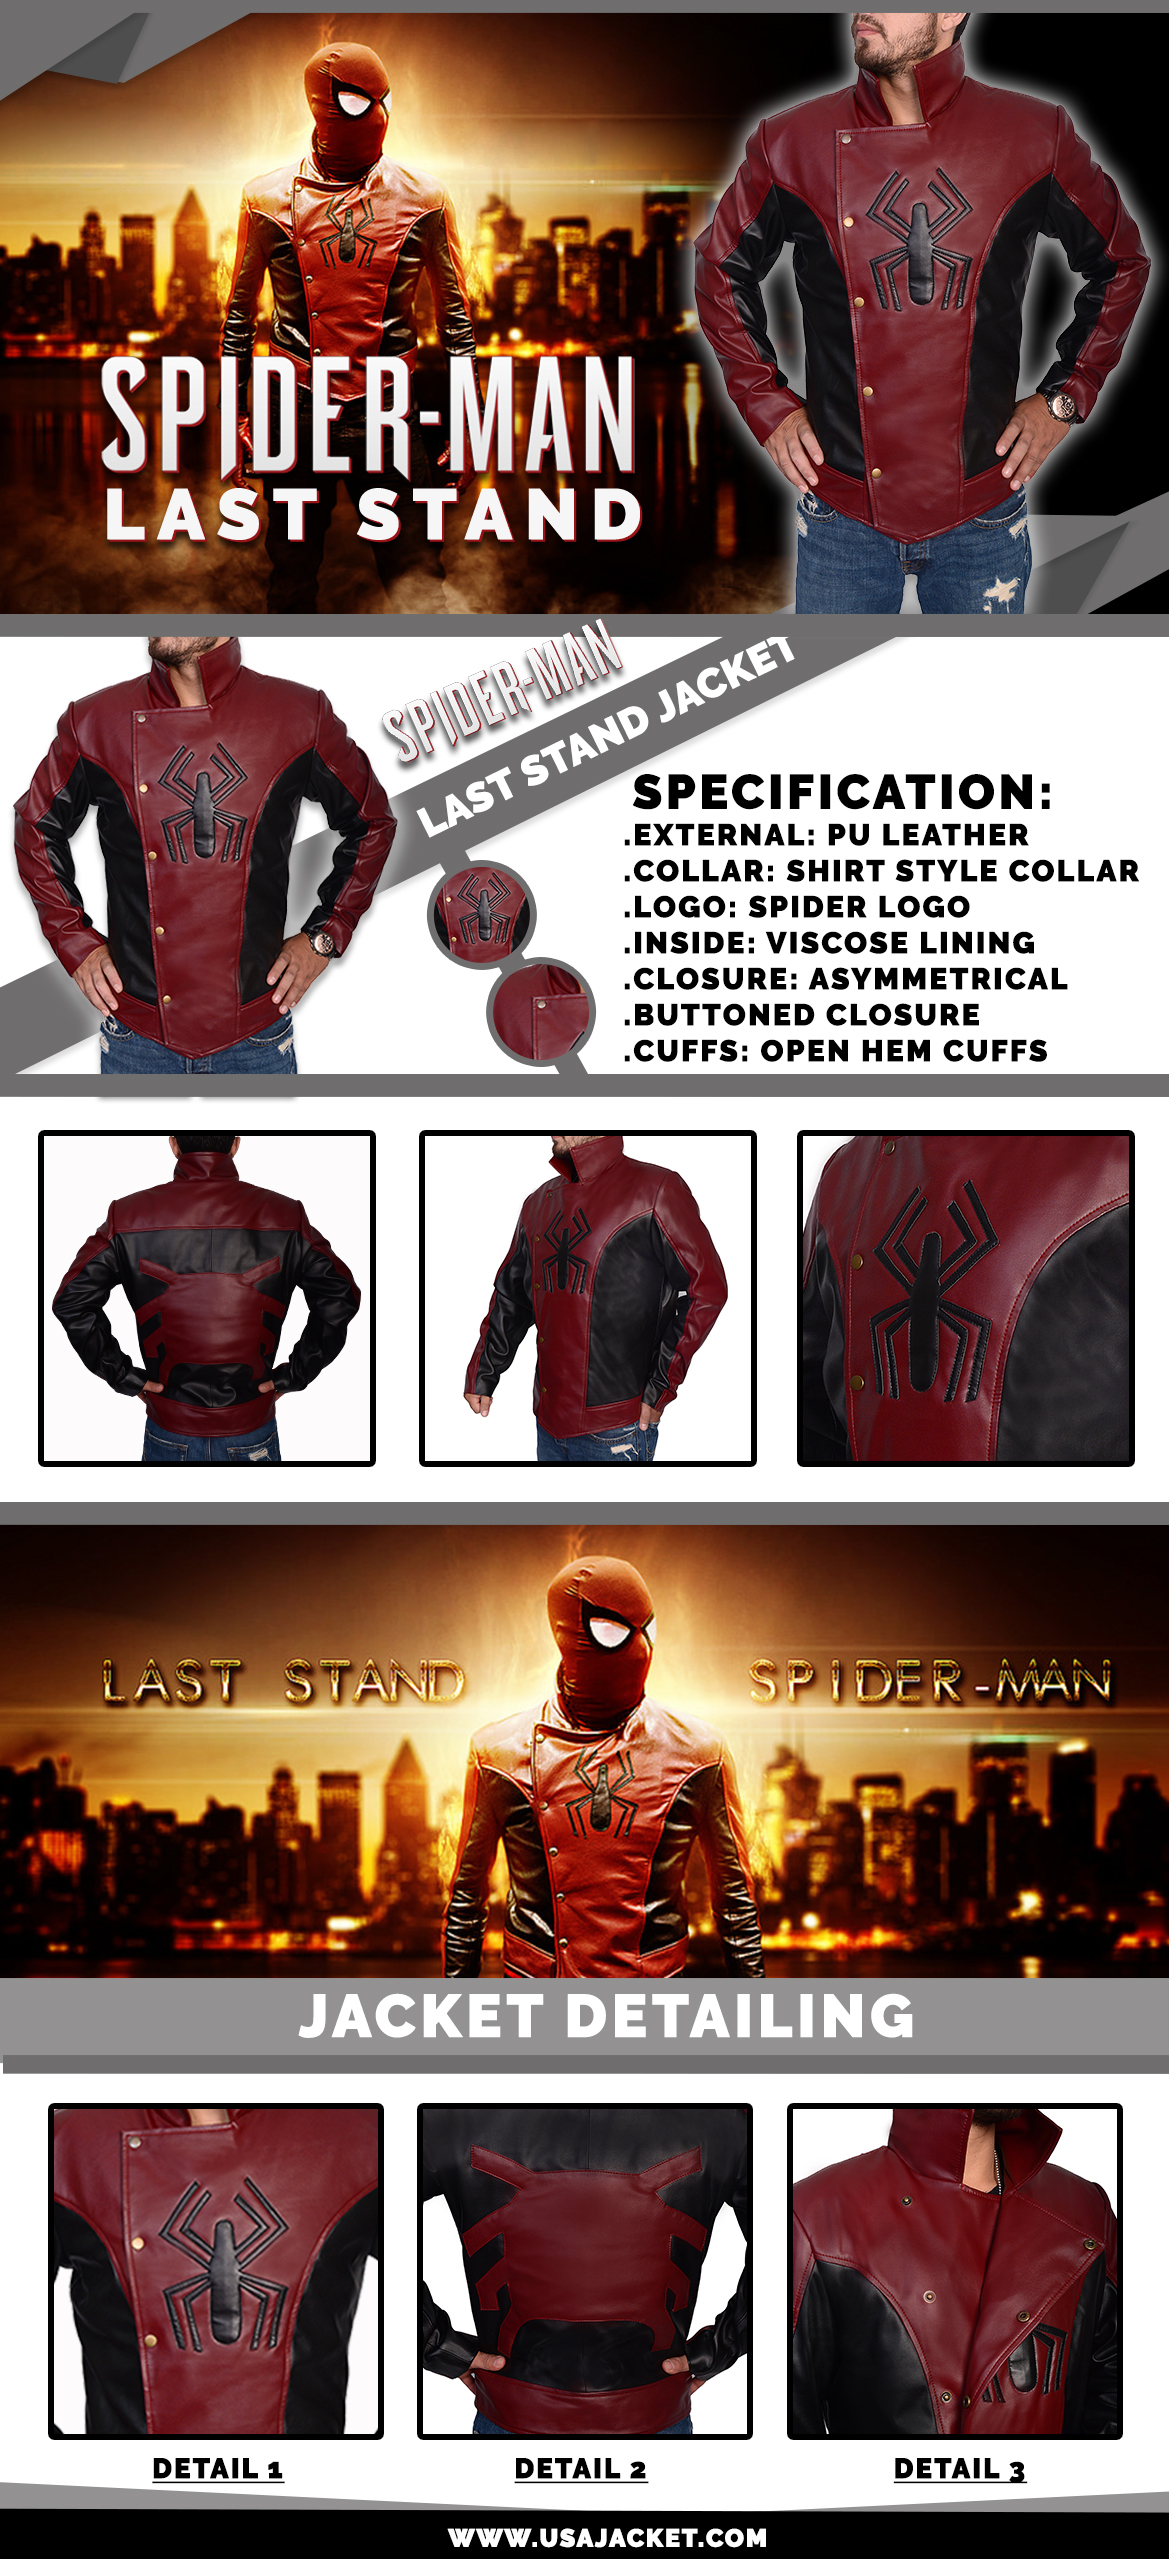 spiderman last stand Jacket Infographic